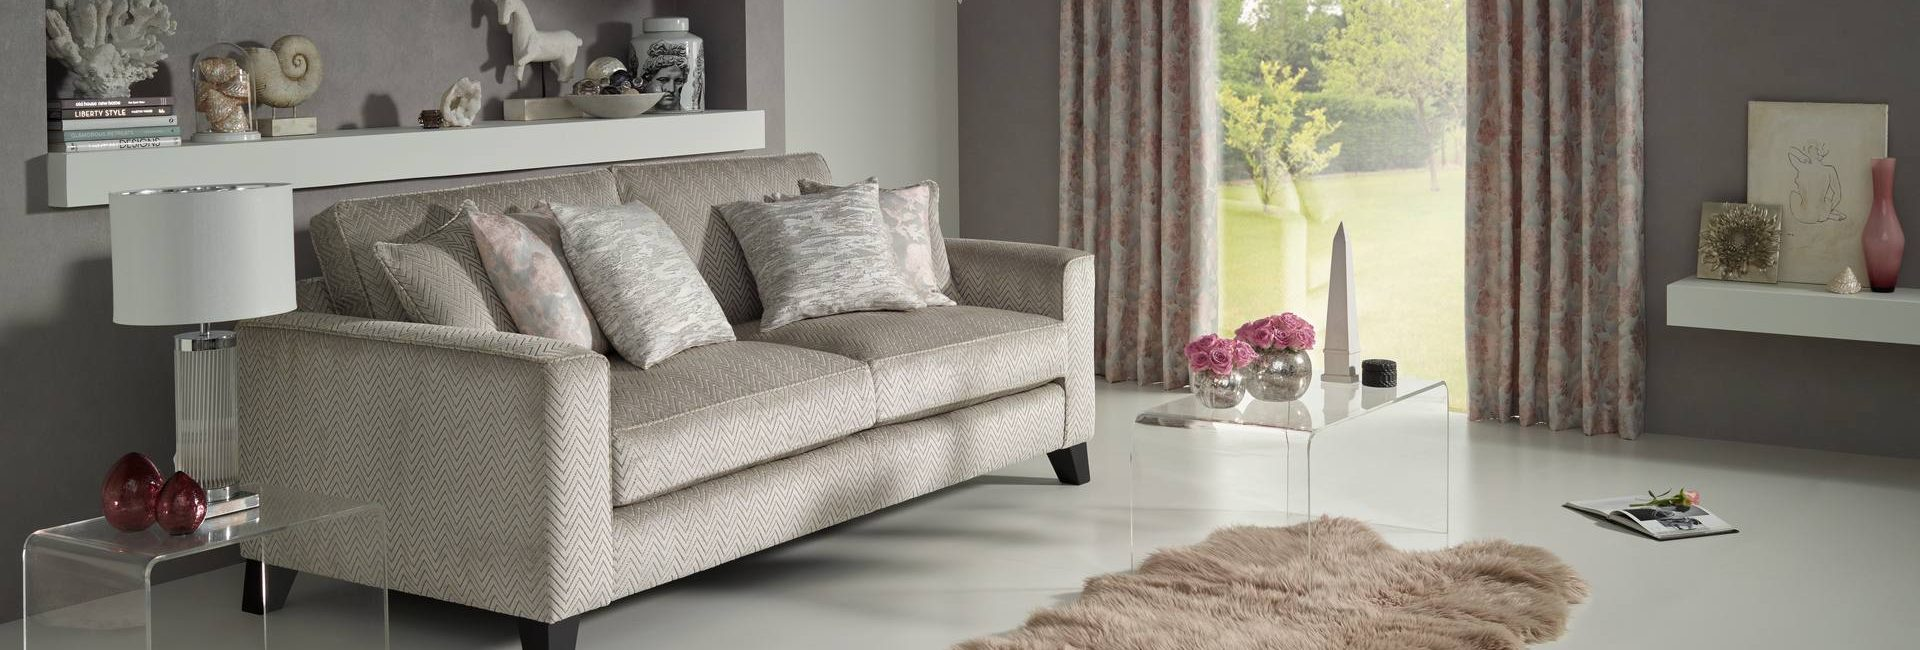 Today Interiors Makino collection of fabrics as curtains and on a sofa - available from Fabric Gallery and Interiors in Dunnington, York